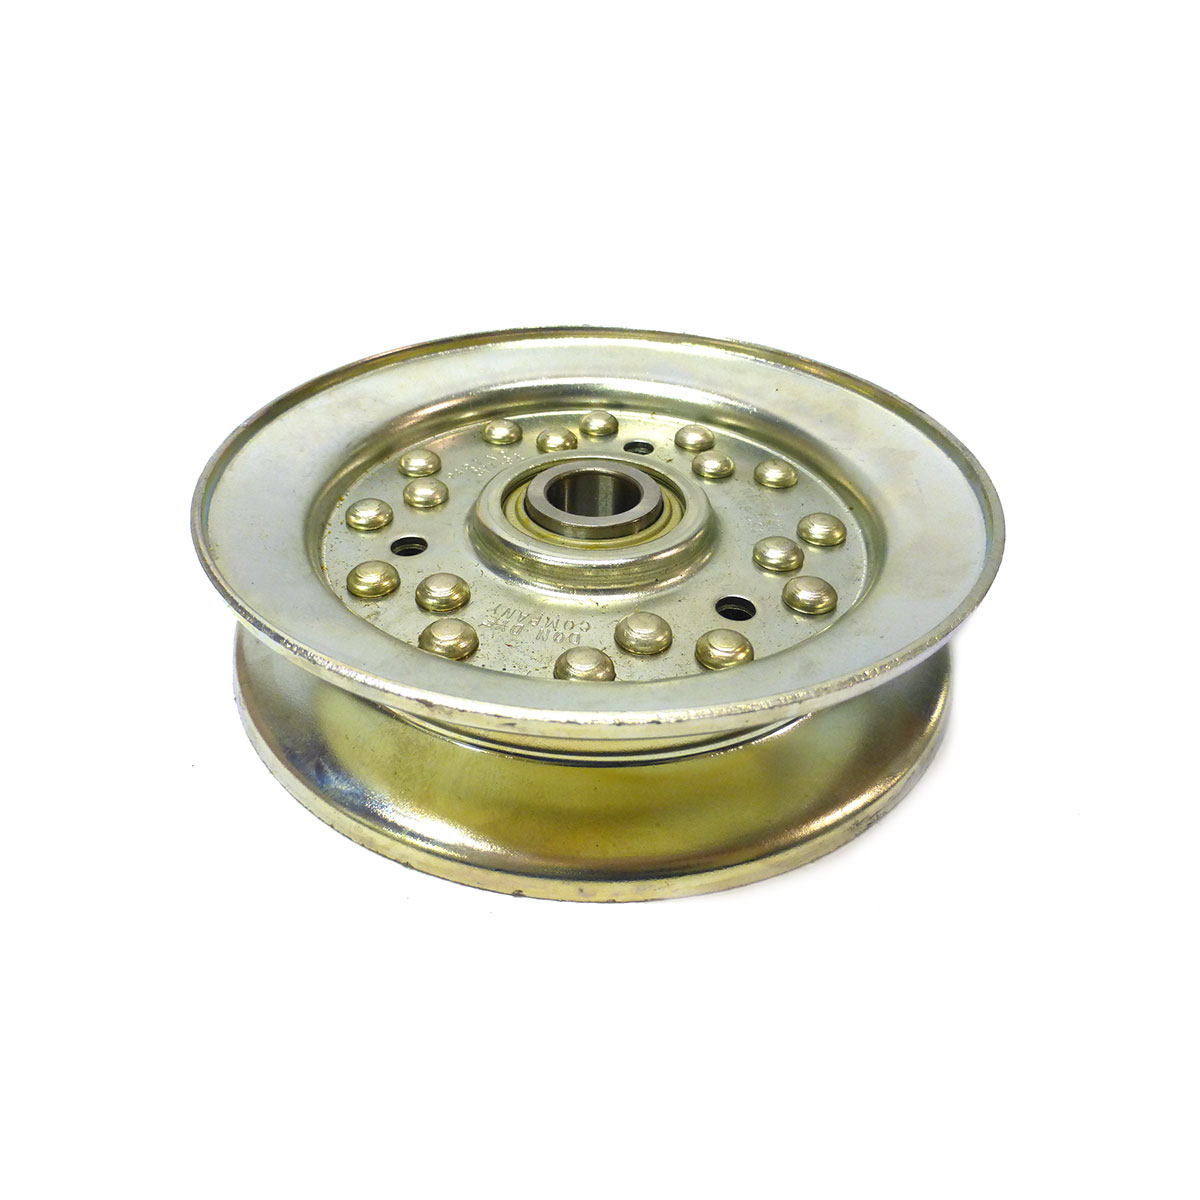 hight resolution of 97319 dixie chopper v idler pulley diesel